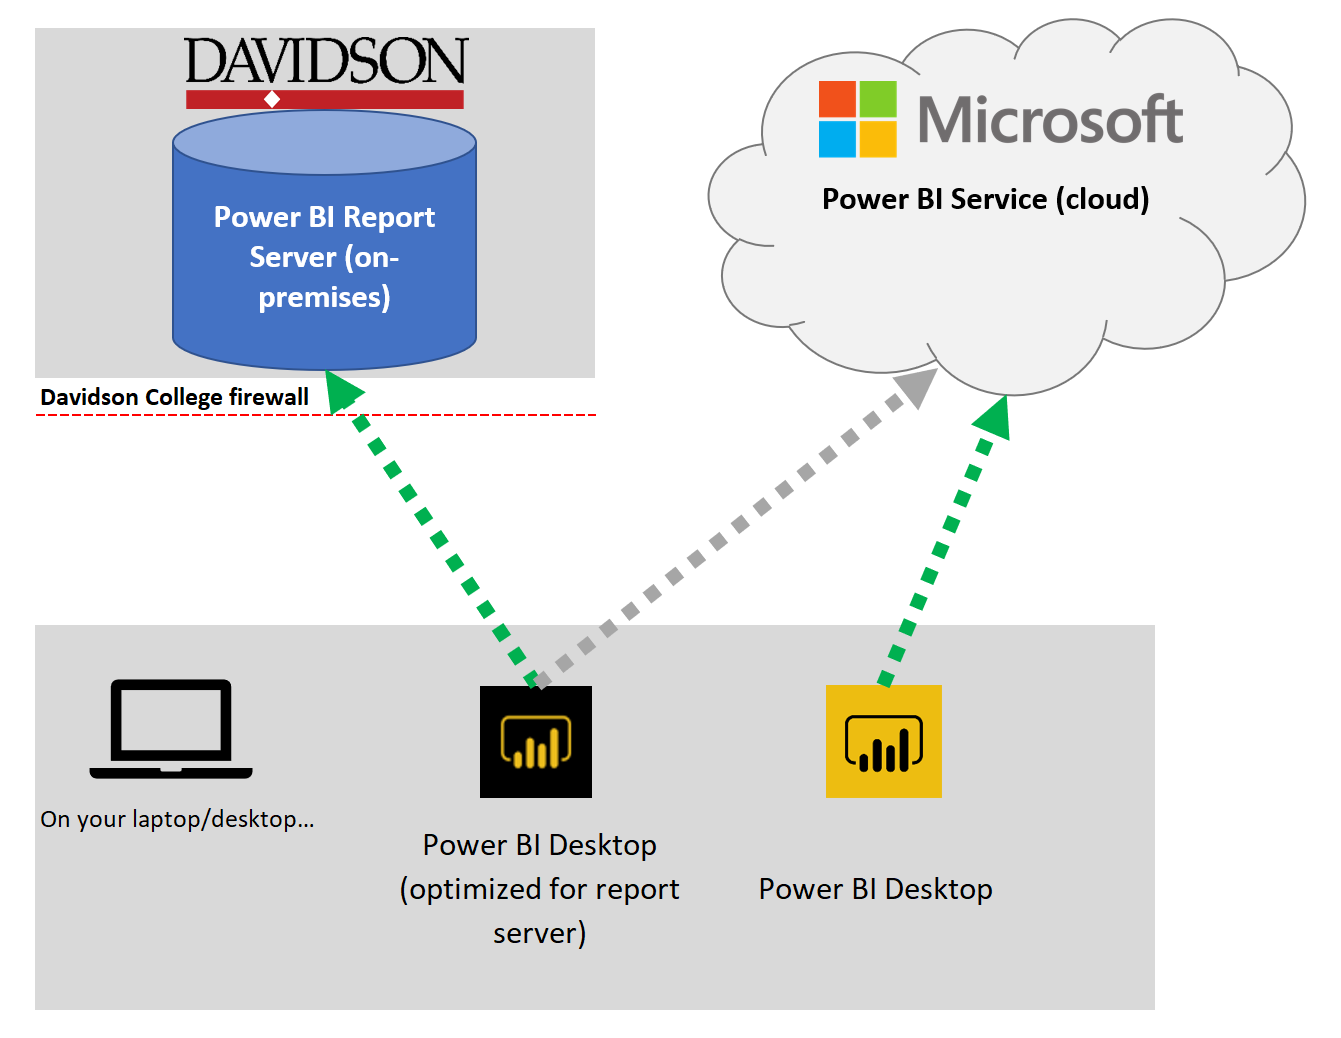 Power BI versions - what's the difference? – Davidson College